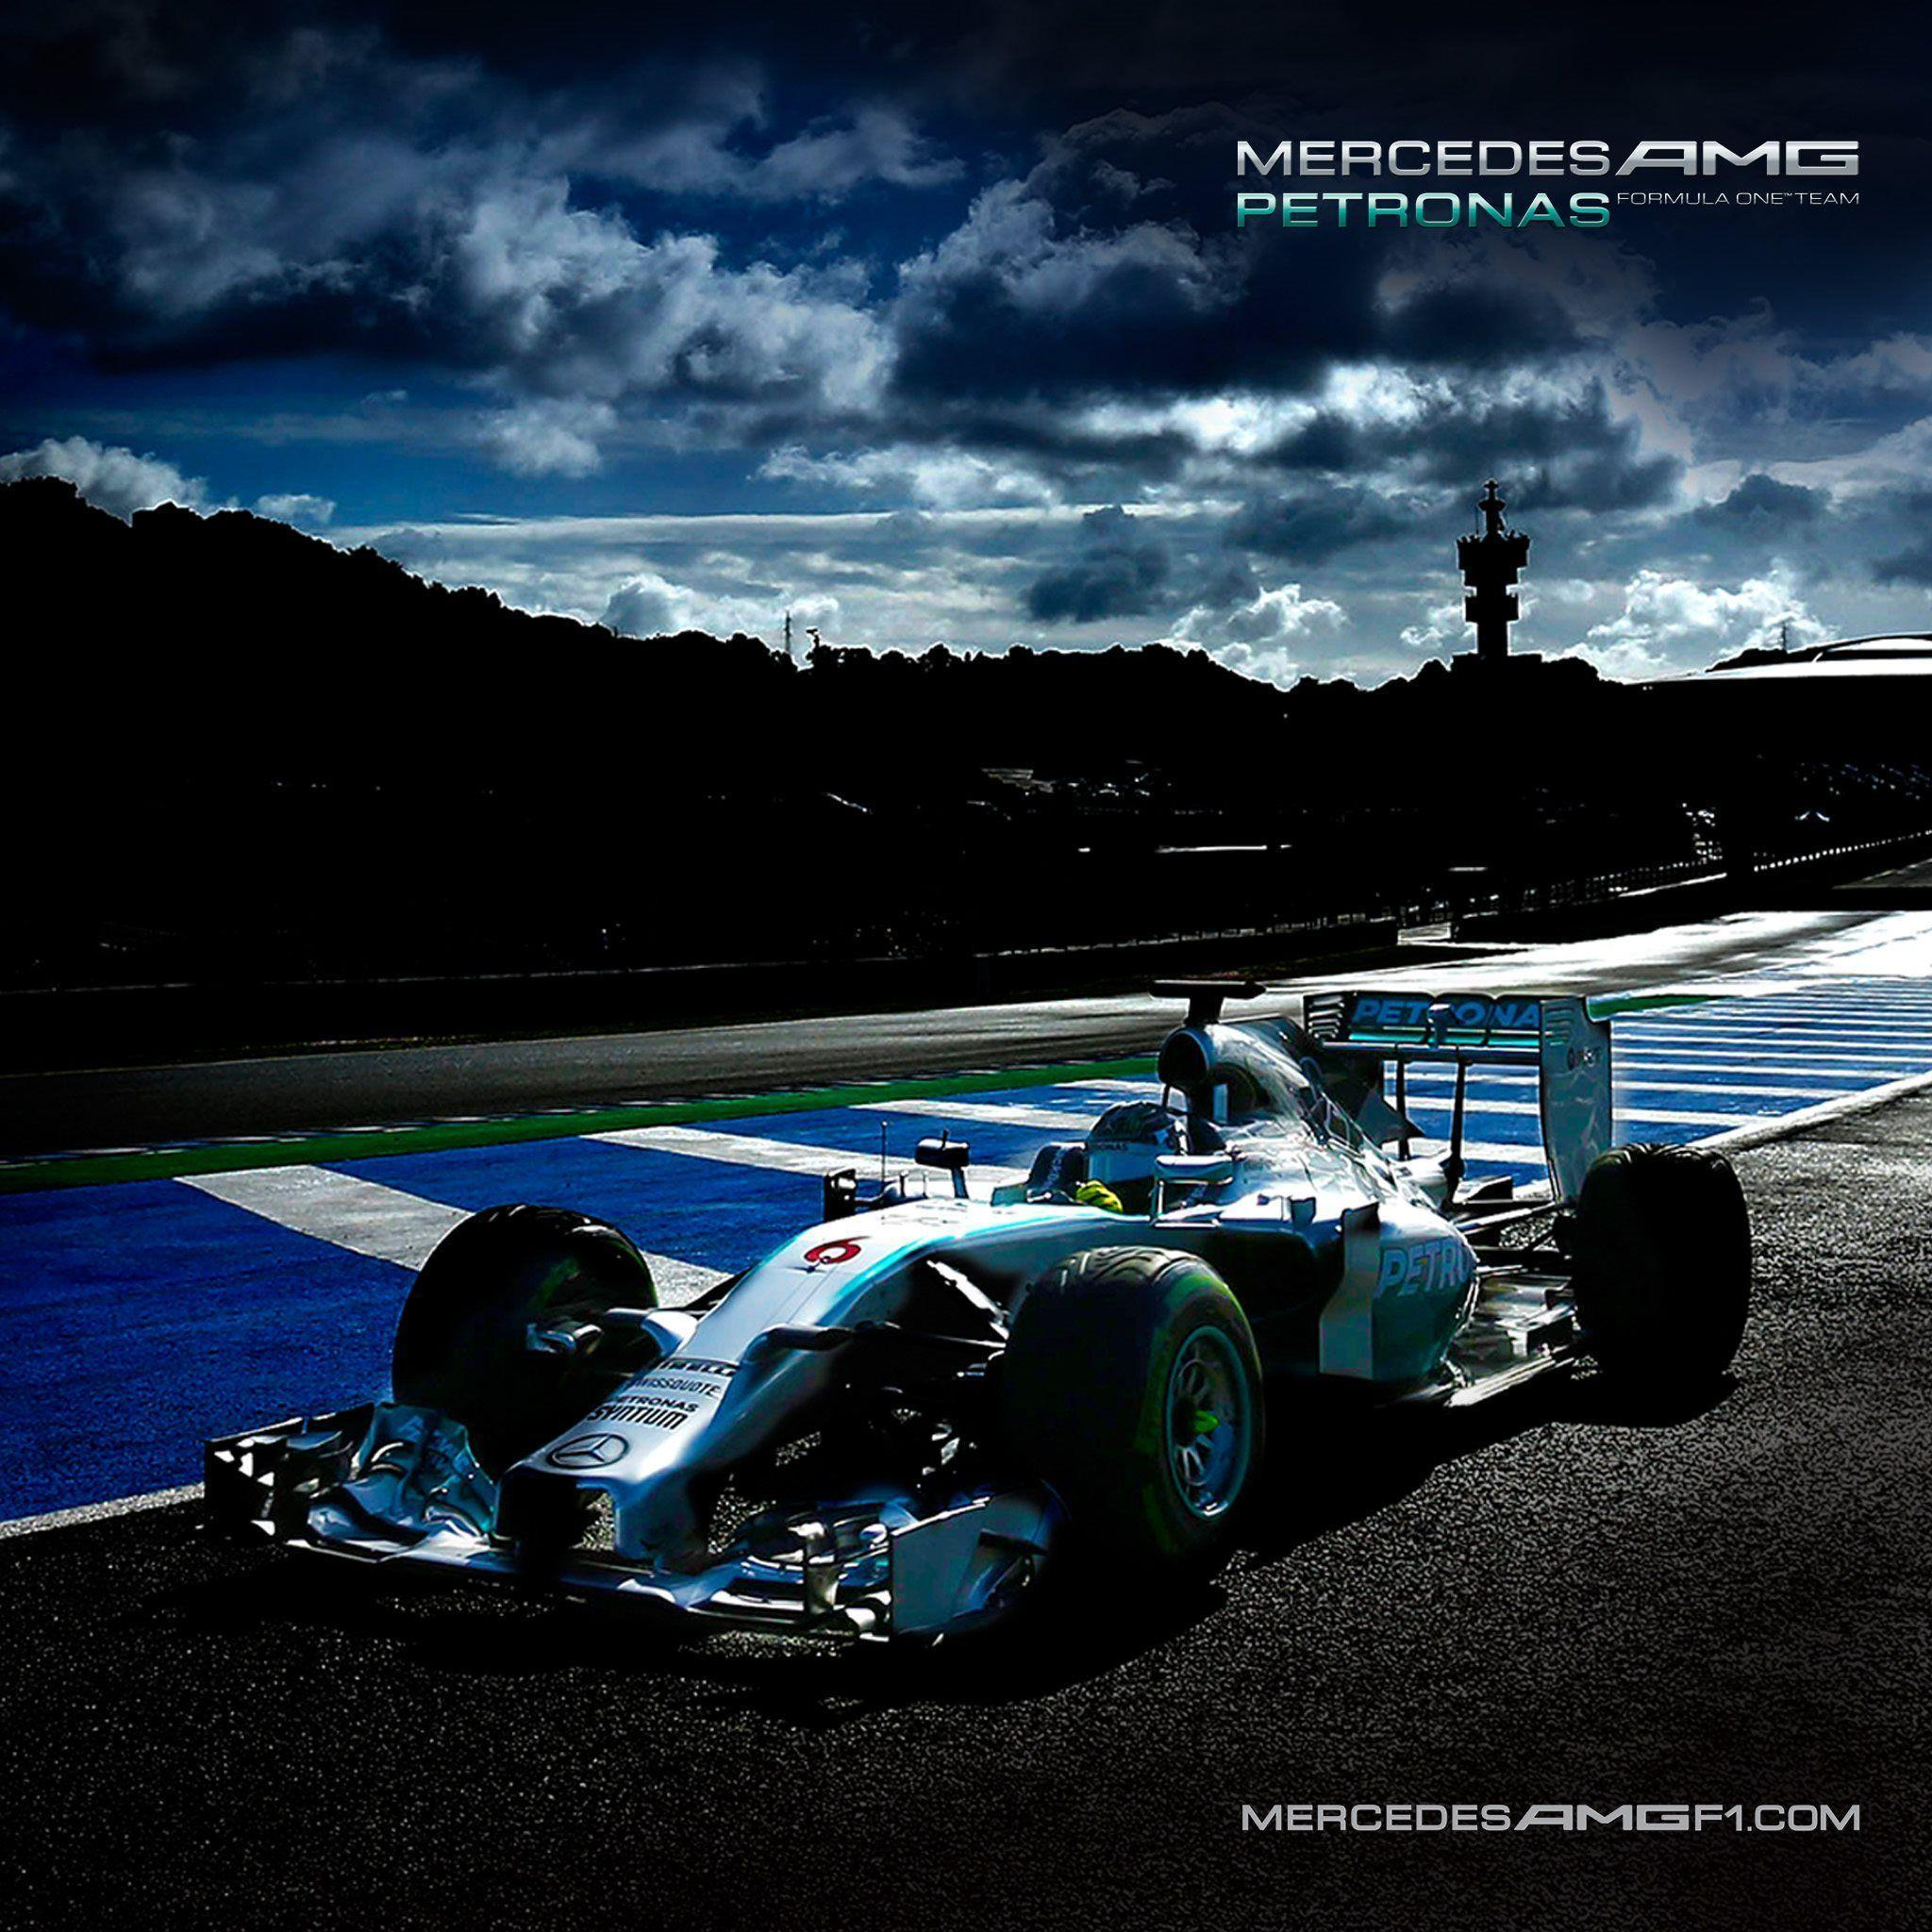 Mercedes Benz Car Wallpaper: Mercedes F1 Wallpapers